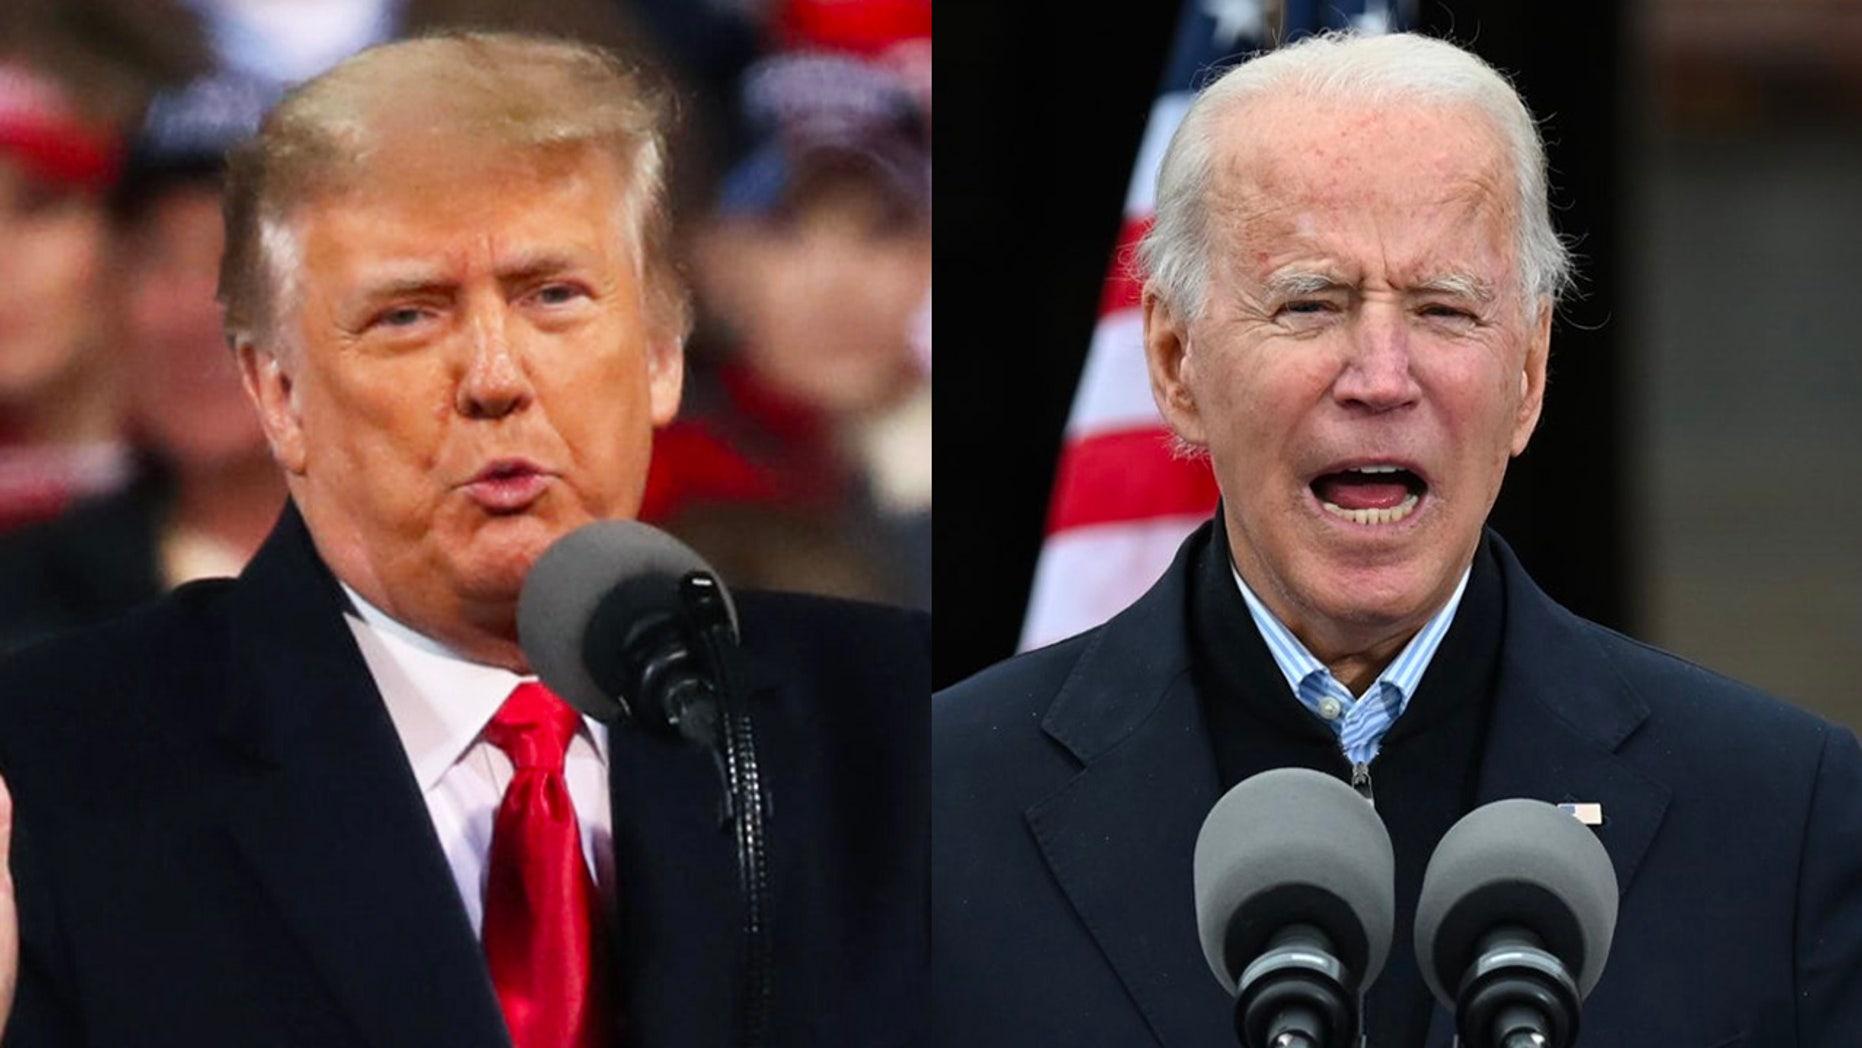 Trump promises 'orderly transition' after Congress certifies Biden win